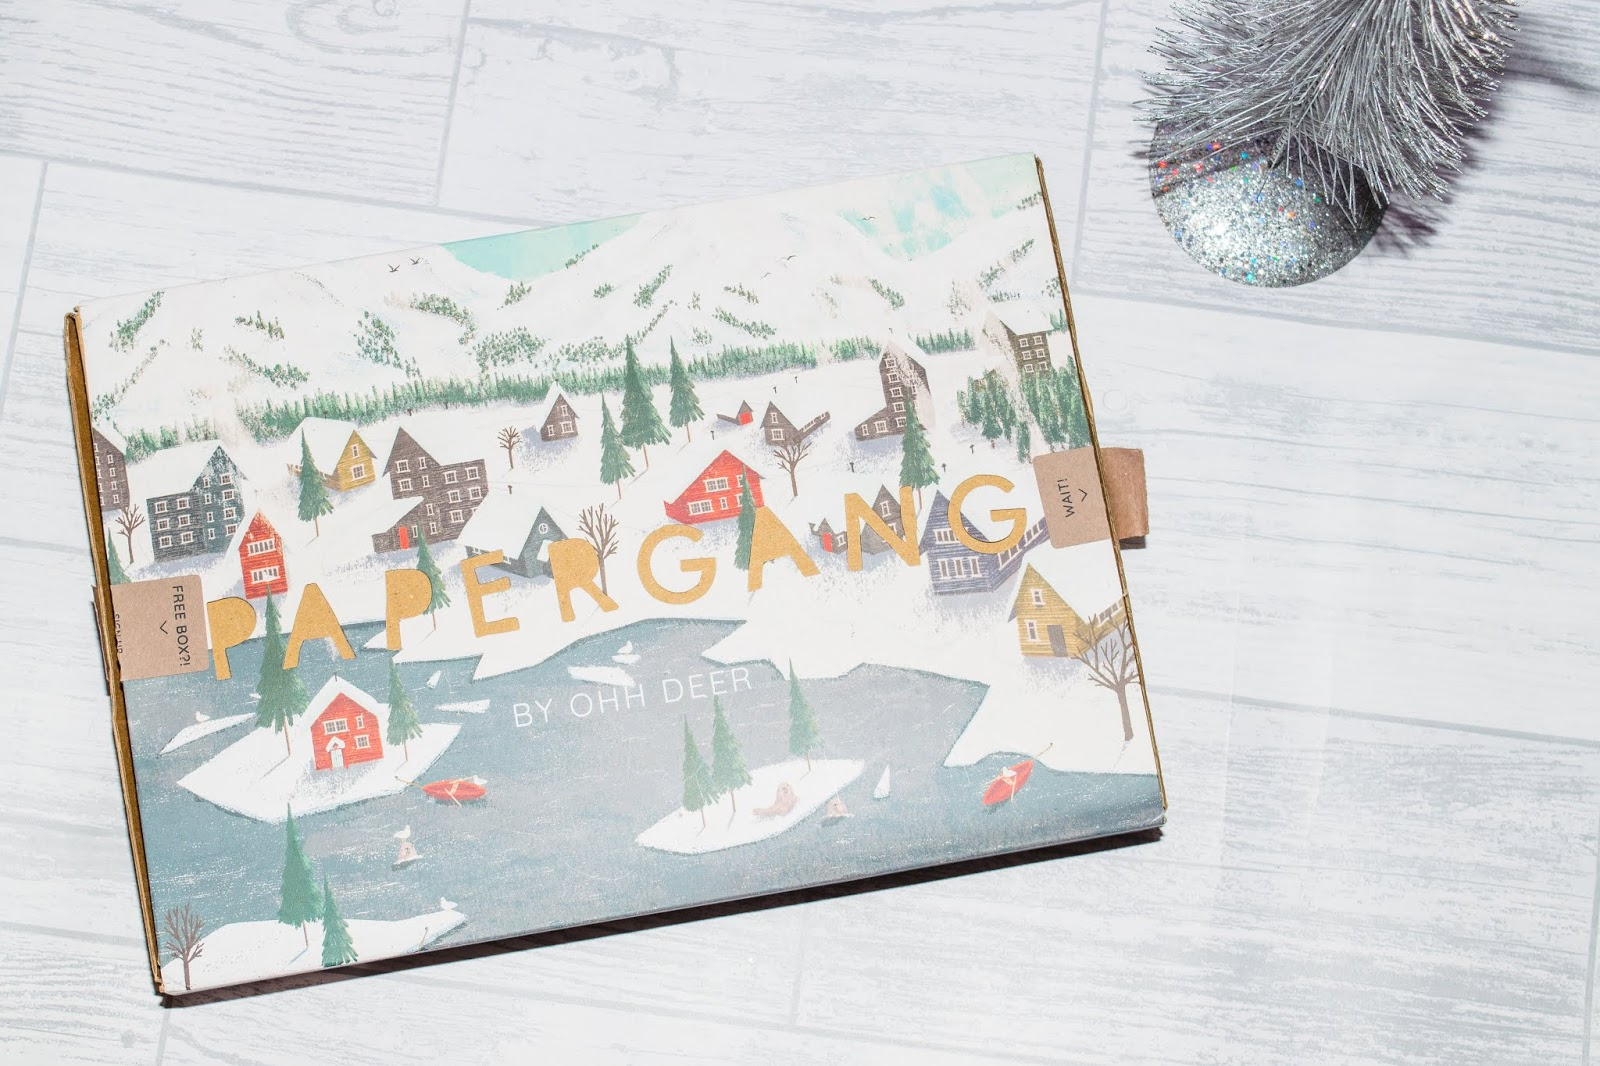 A box with the word 'papergang' cut out of the sleeve with a snowy forest design.